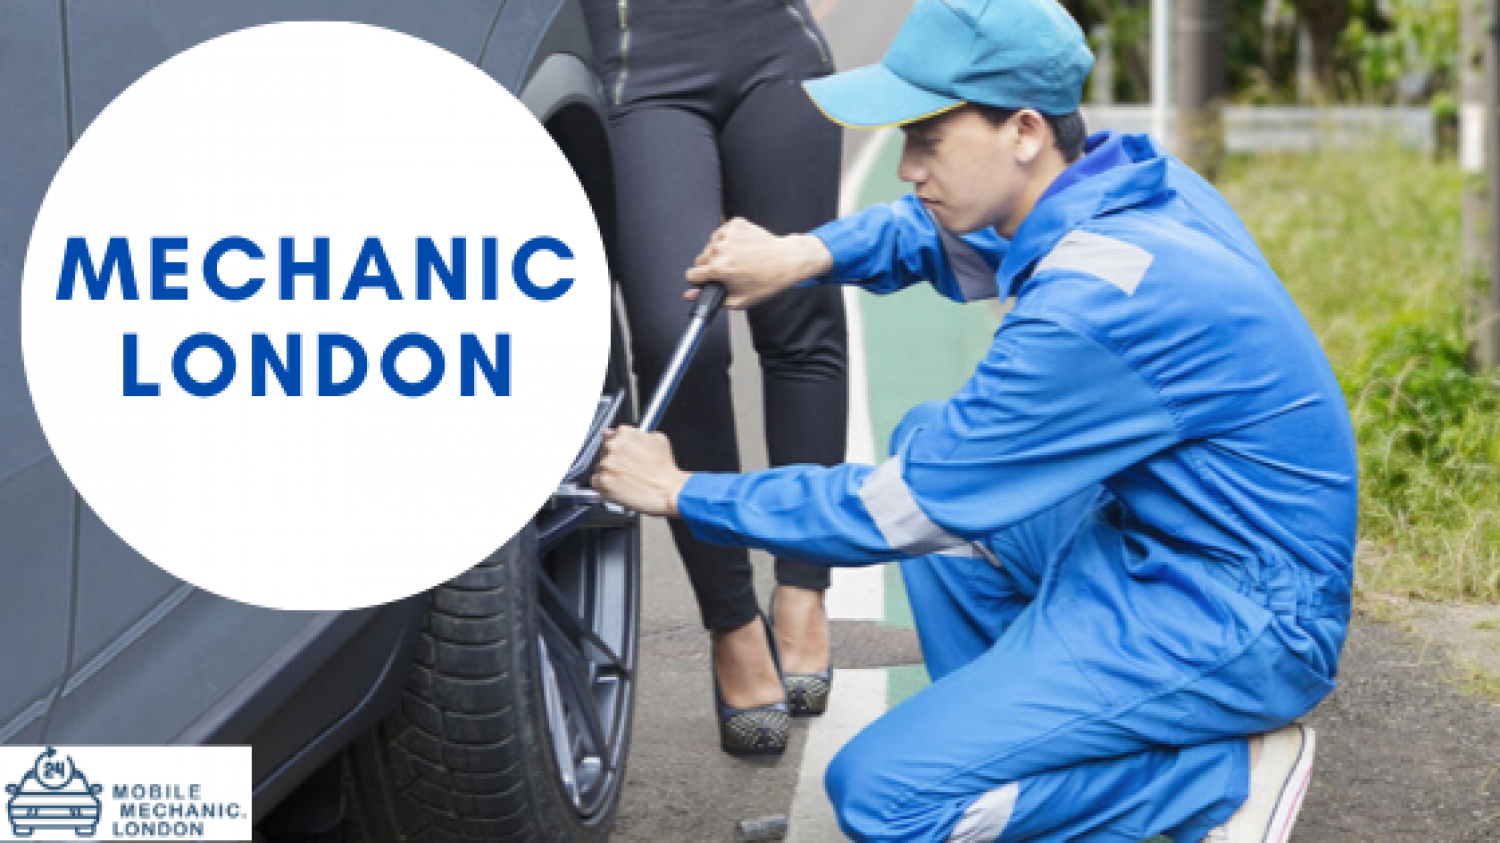 Professional Mobile Mechanic London Infographic